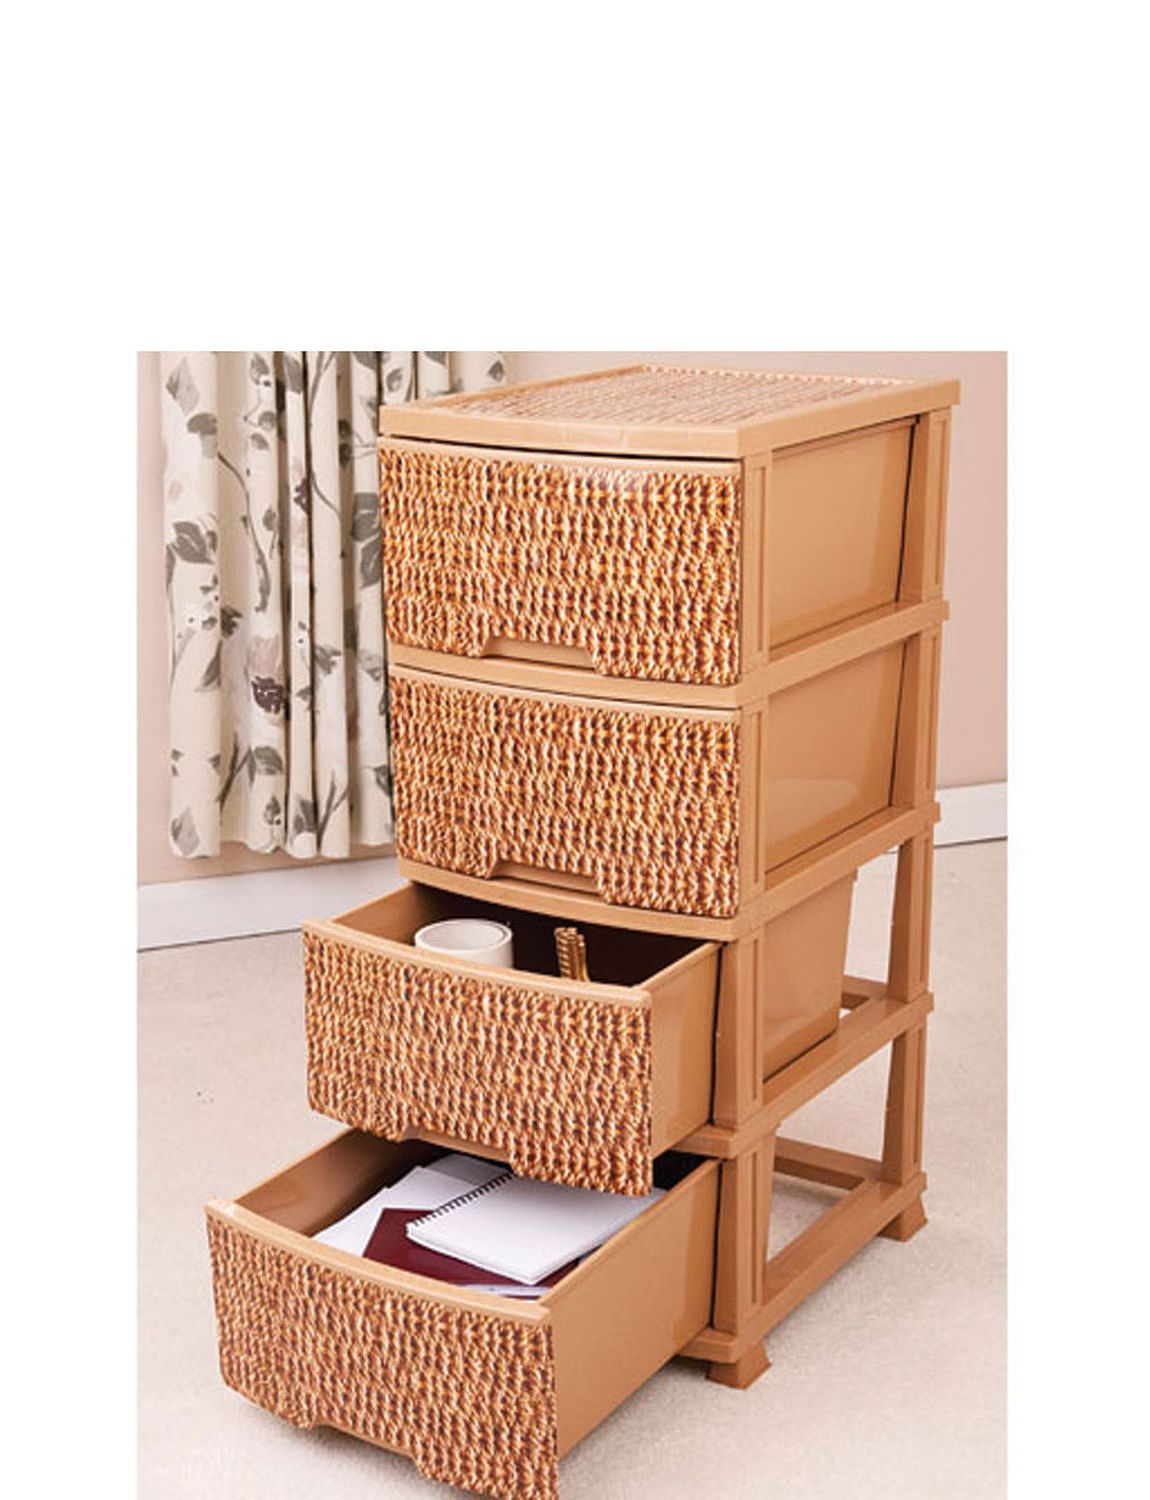 Wicker Effect Extra Large Storage Units Home Furniture